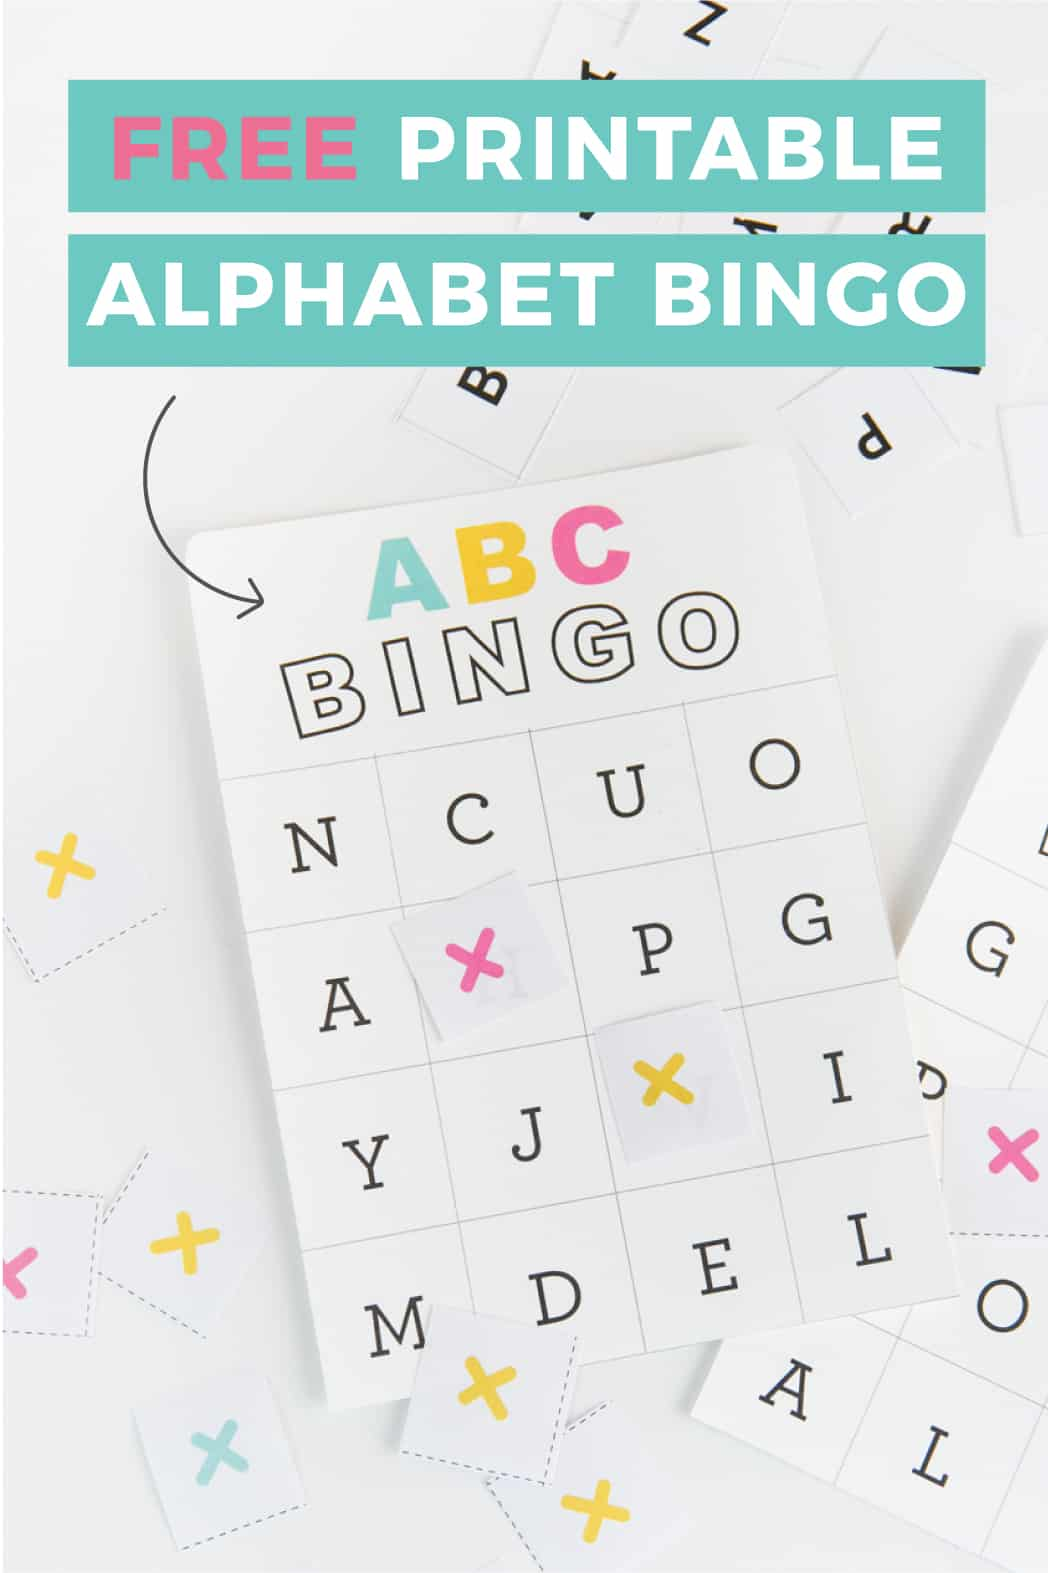 Help kids learn the alphabet by printing out these Free Printable Alphabet Bingo Cards. This set includes 4 set of cards using uppercase letters, allowing 4 children to play at once. The design uses minimal ink and can be printed on 8.5 x 11 paper.